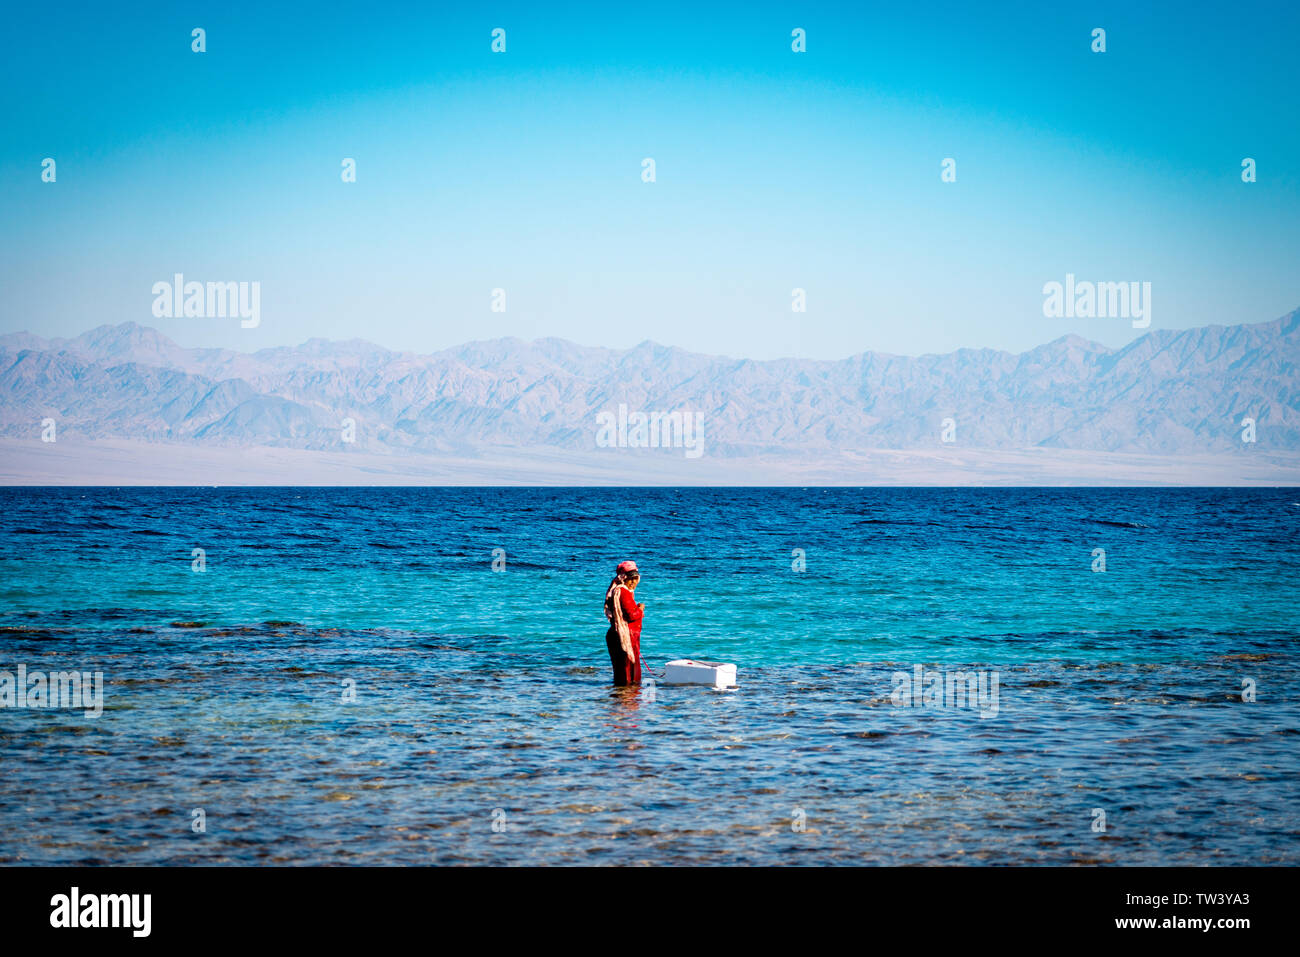 A Bedouin woman fishes in the shallows of the Red Sea in Sinai, Egypt, with Saudi Arabia in the background - Stock Image